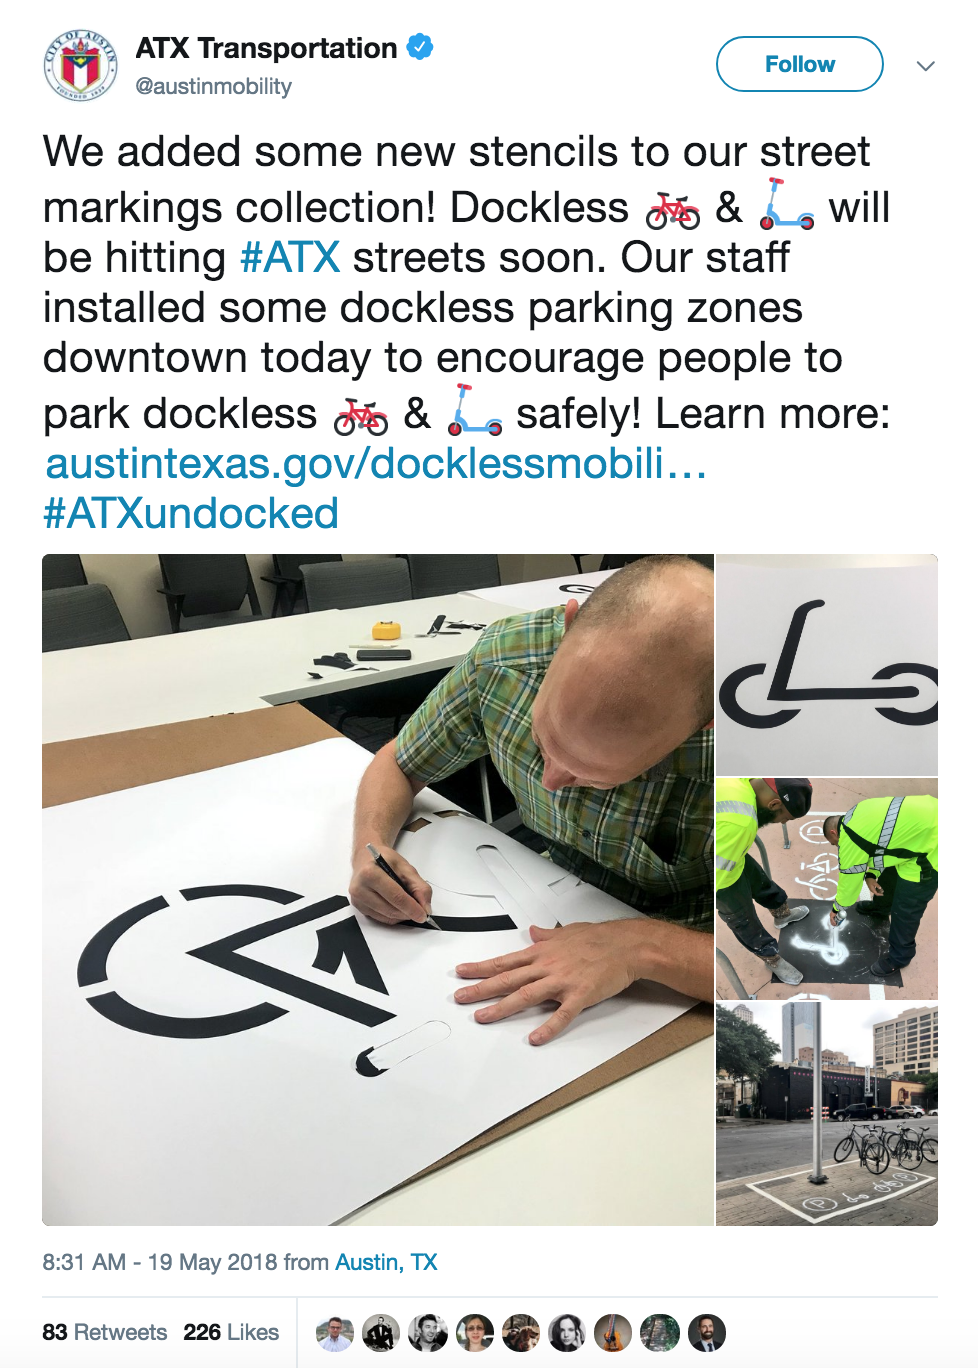 Screenshot of ATX Transportation tweet on scooter parking stencils on sidewalk